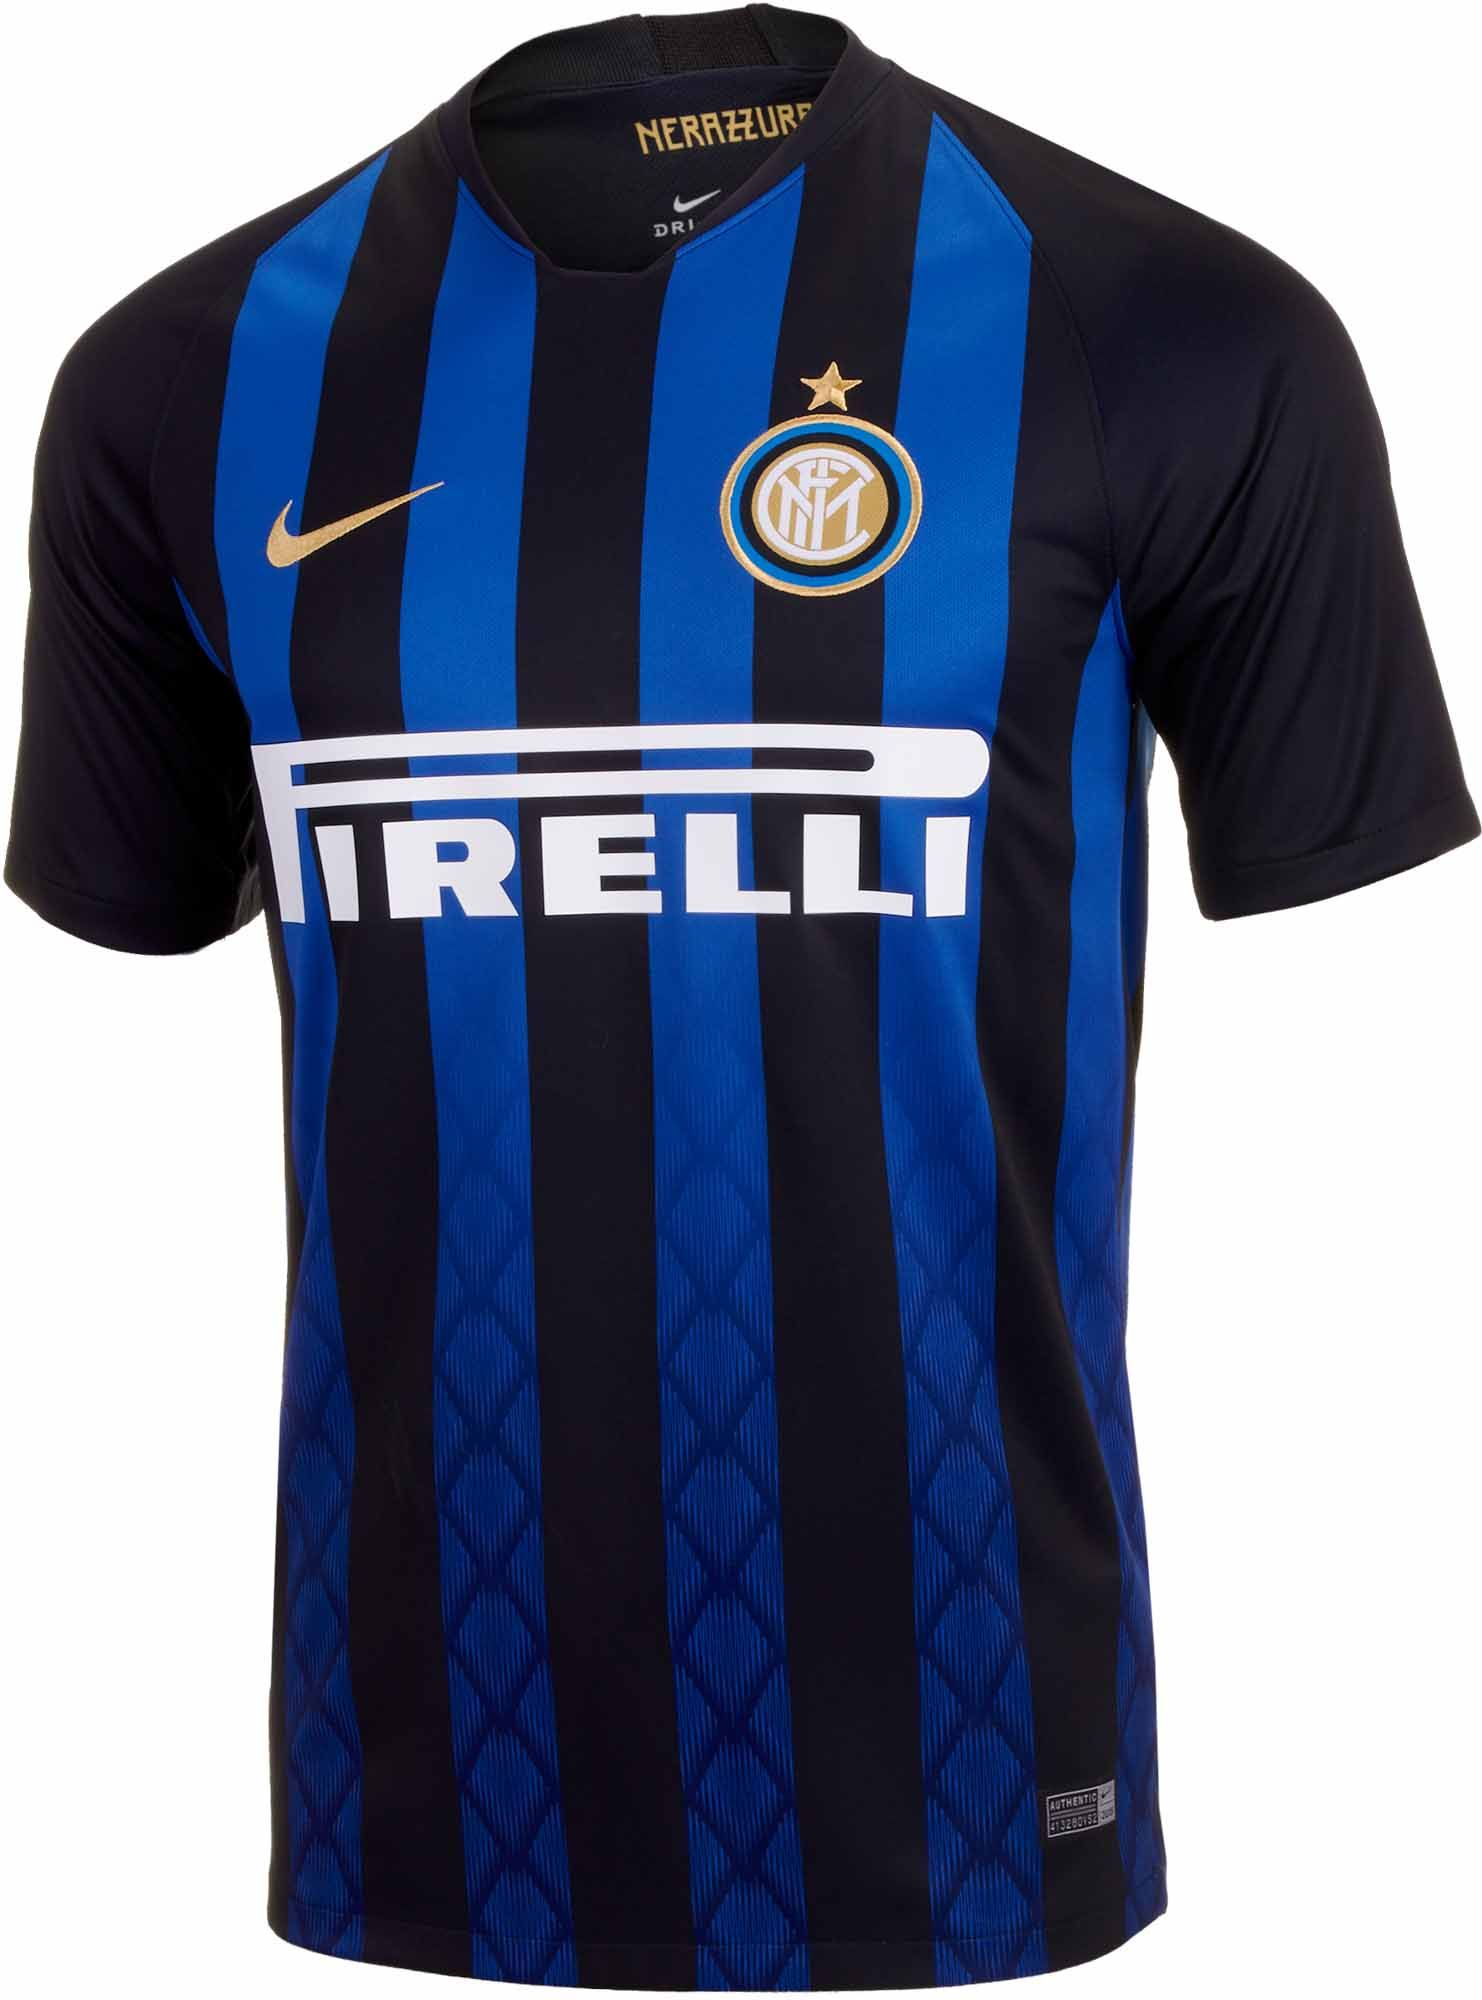 afdc6f47ef409 2018 19 Nike Inter Milan Home Jersey. Hot at www.soccerpro.com